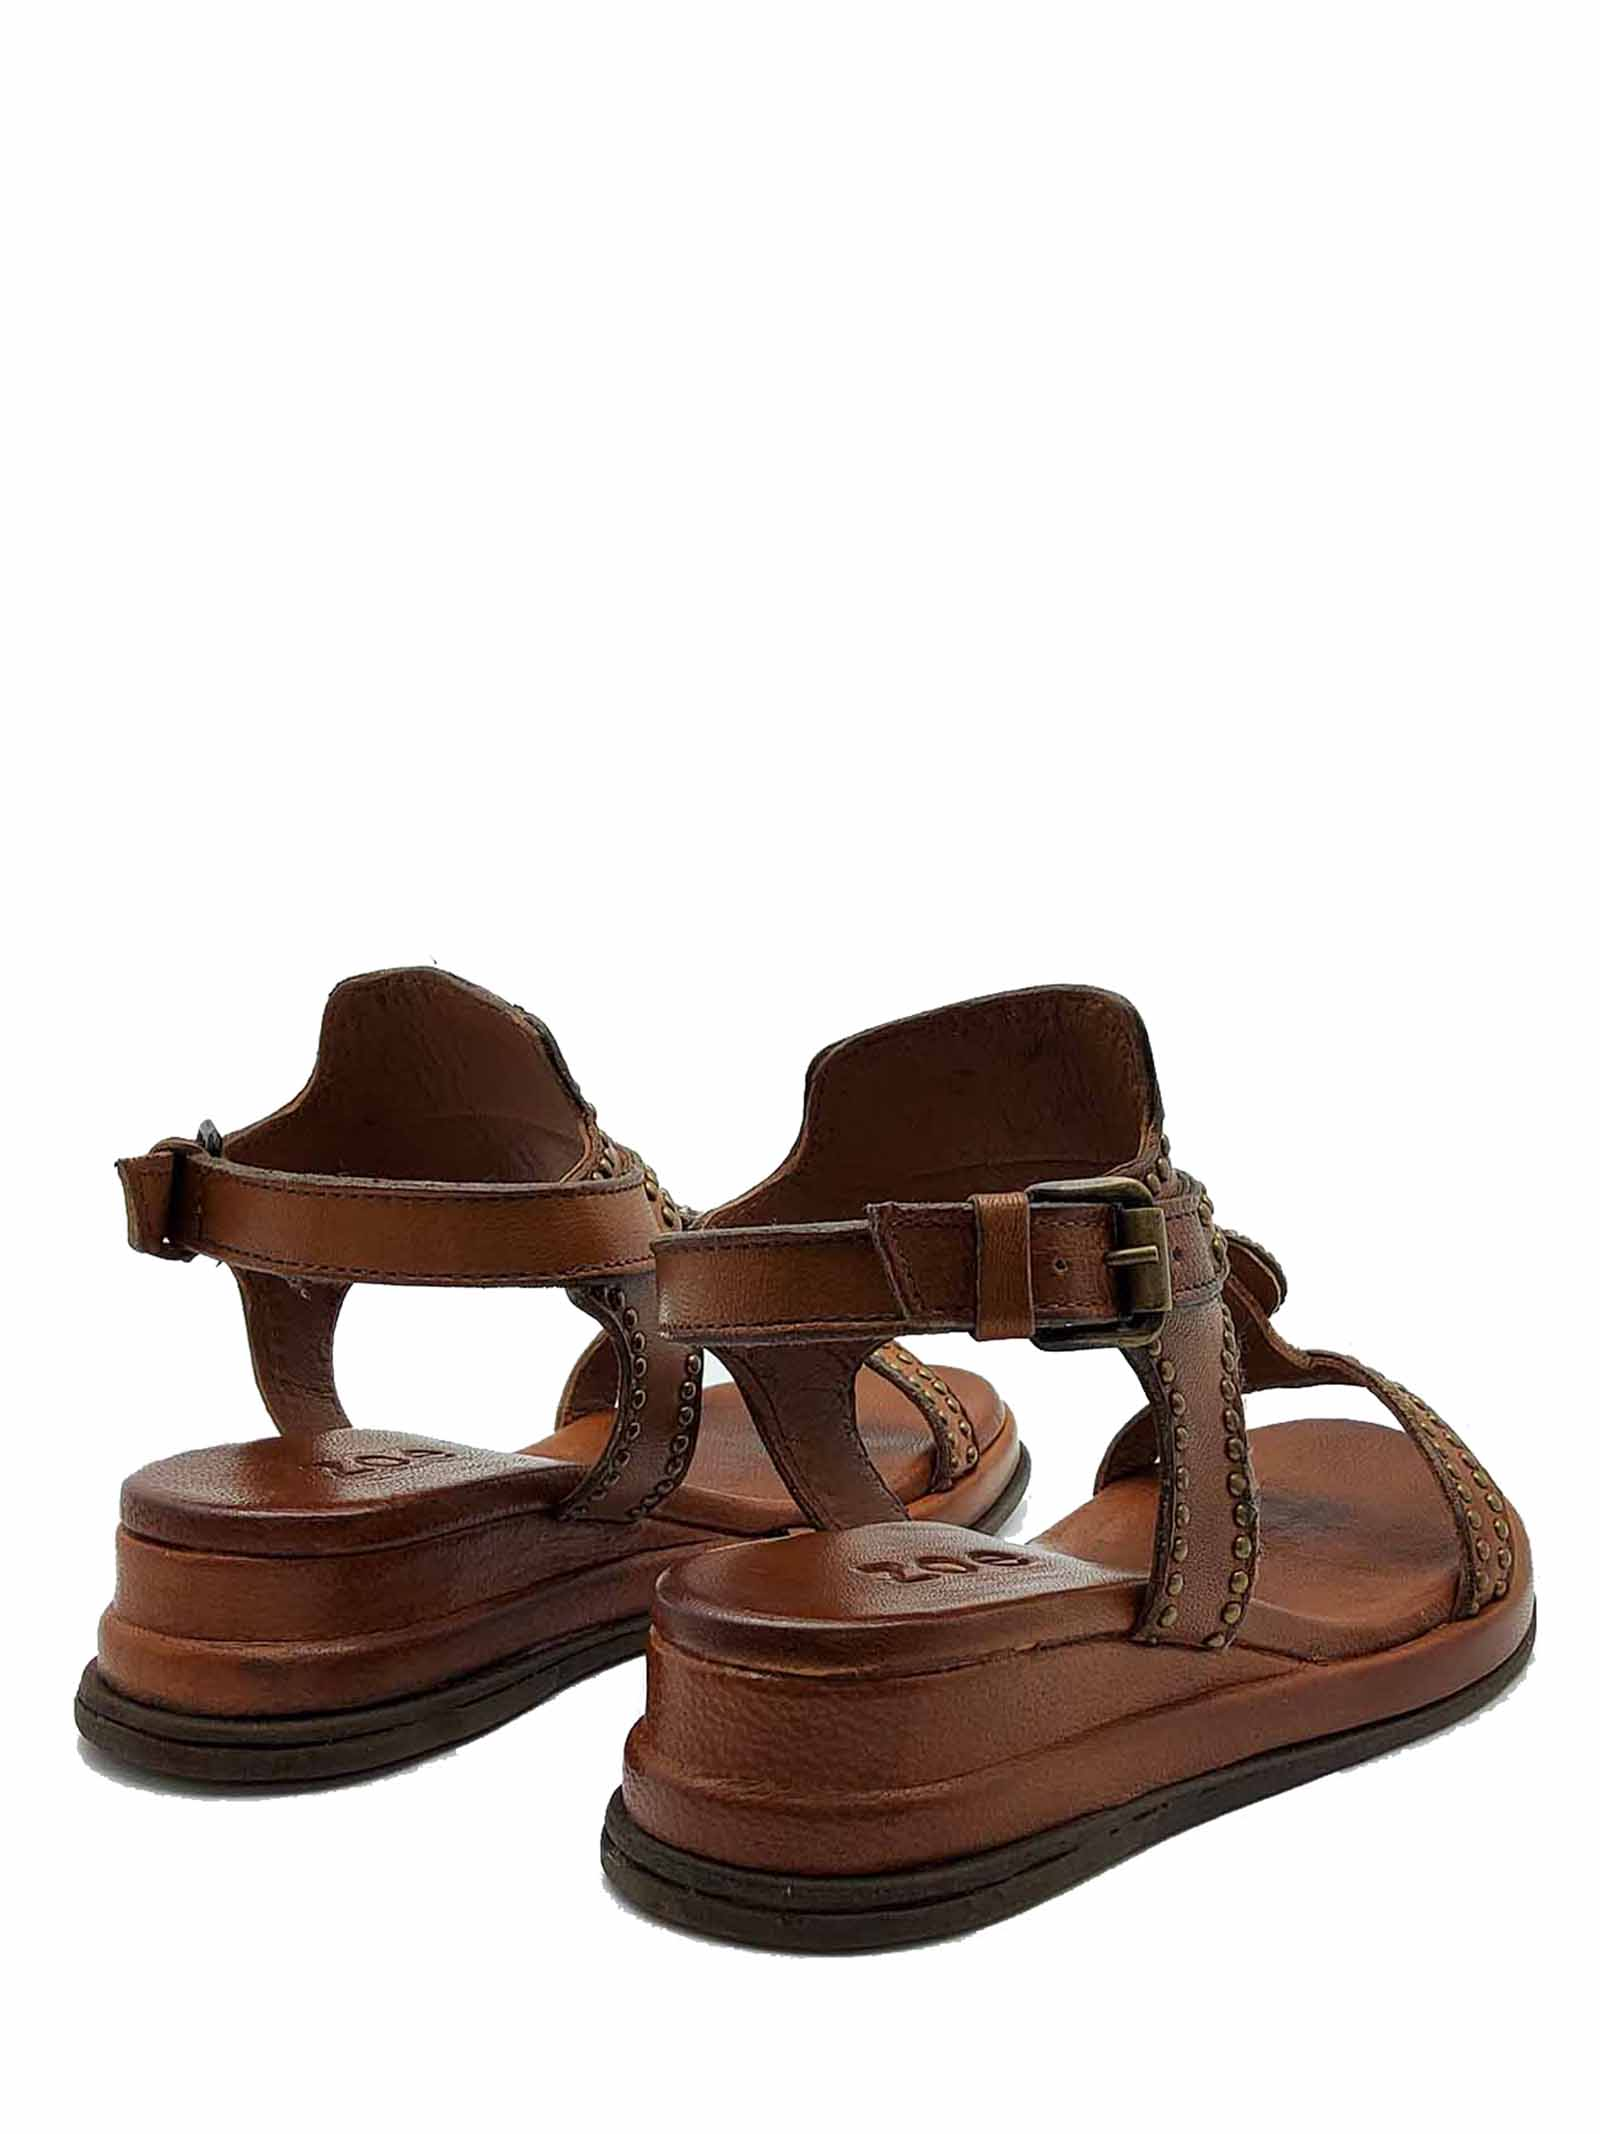 Women's Shoes Leather Sandals with Studs and Ankle Strap Ultra Light Wedge Zoe | Wedge Sandals | CHEYENNE02014